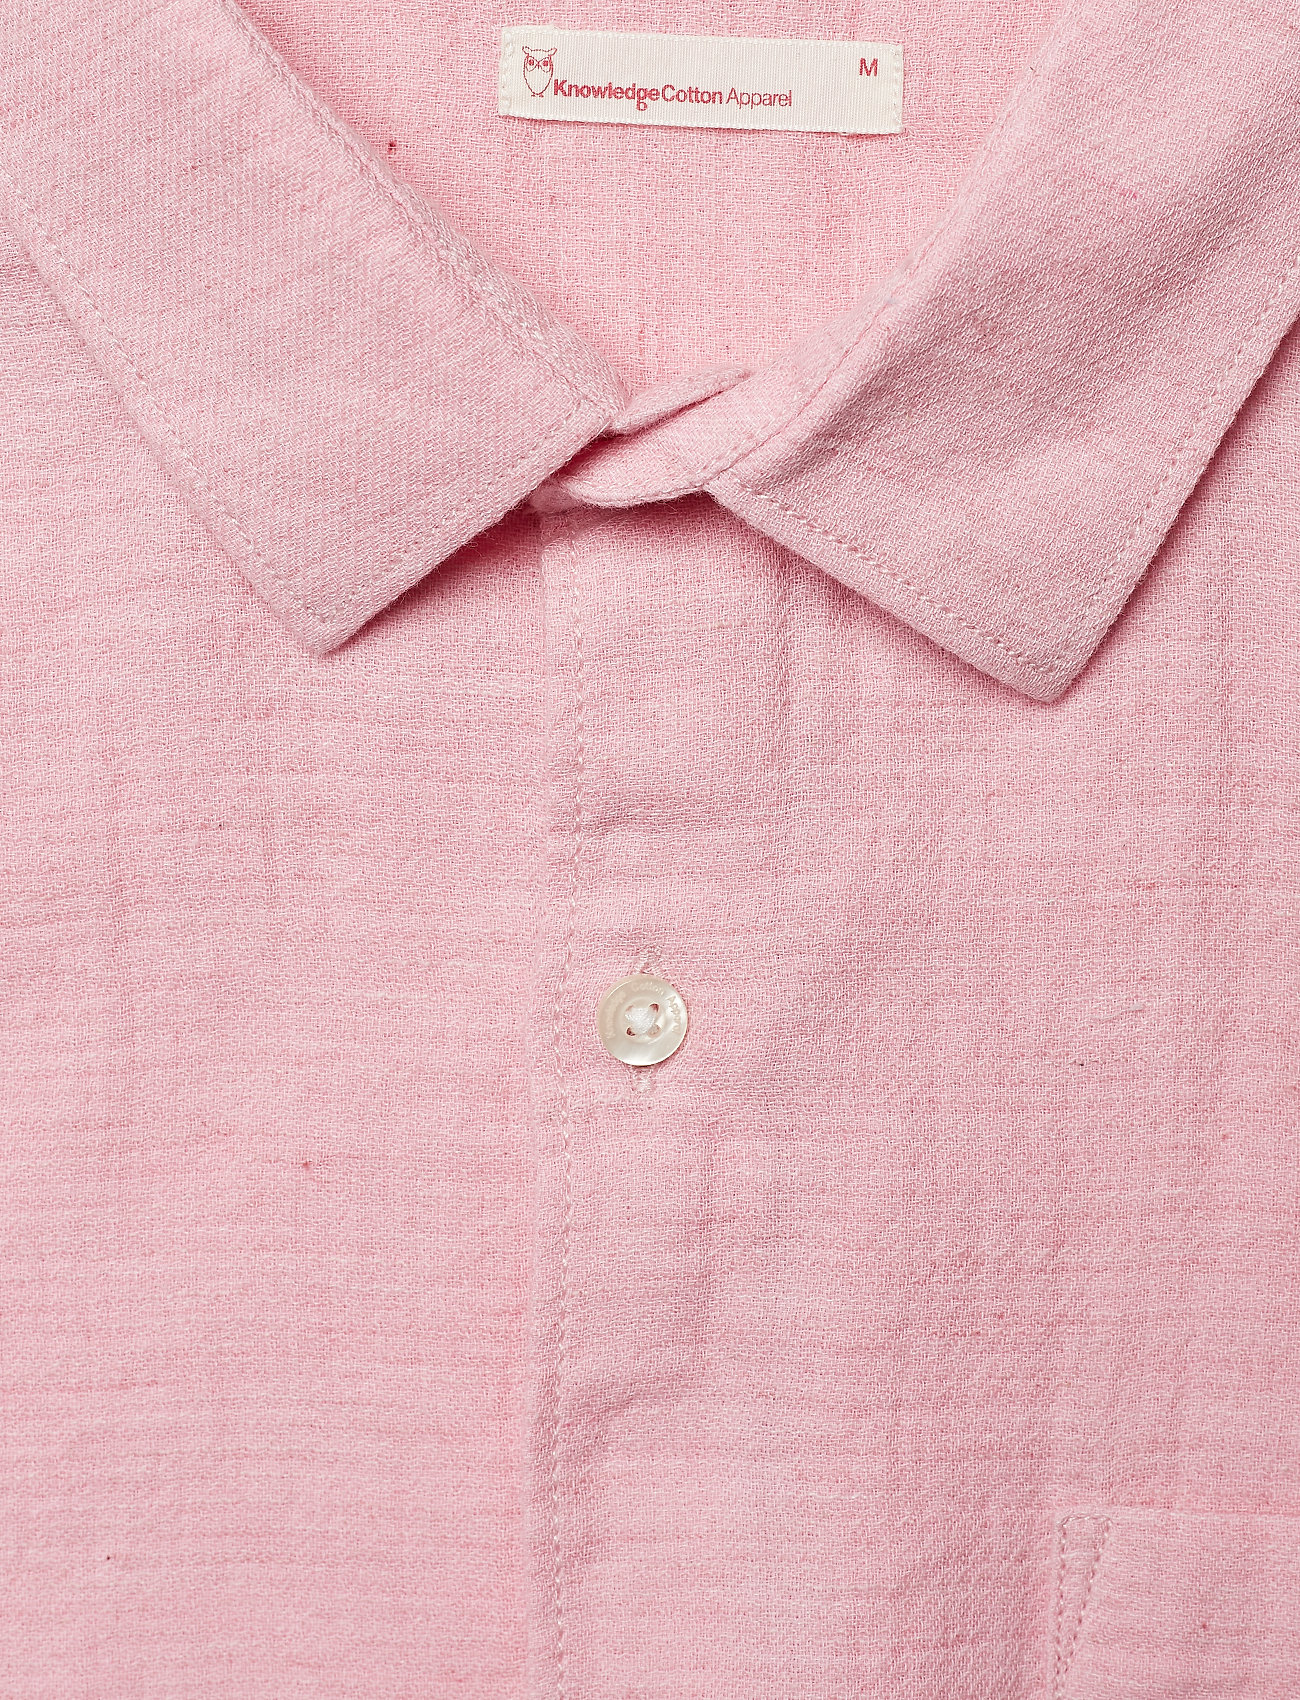 Knowledge Cotton Apparel Double Layer Shirt - Gots Skjortor Pink Nectar